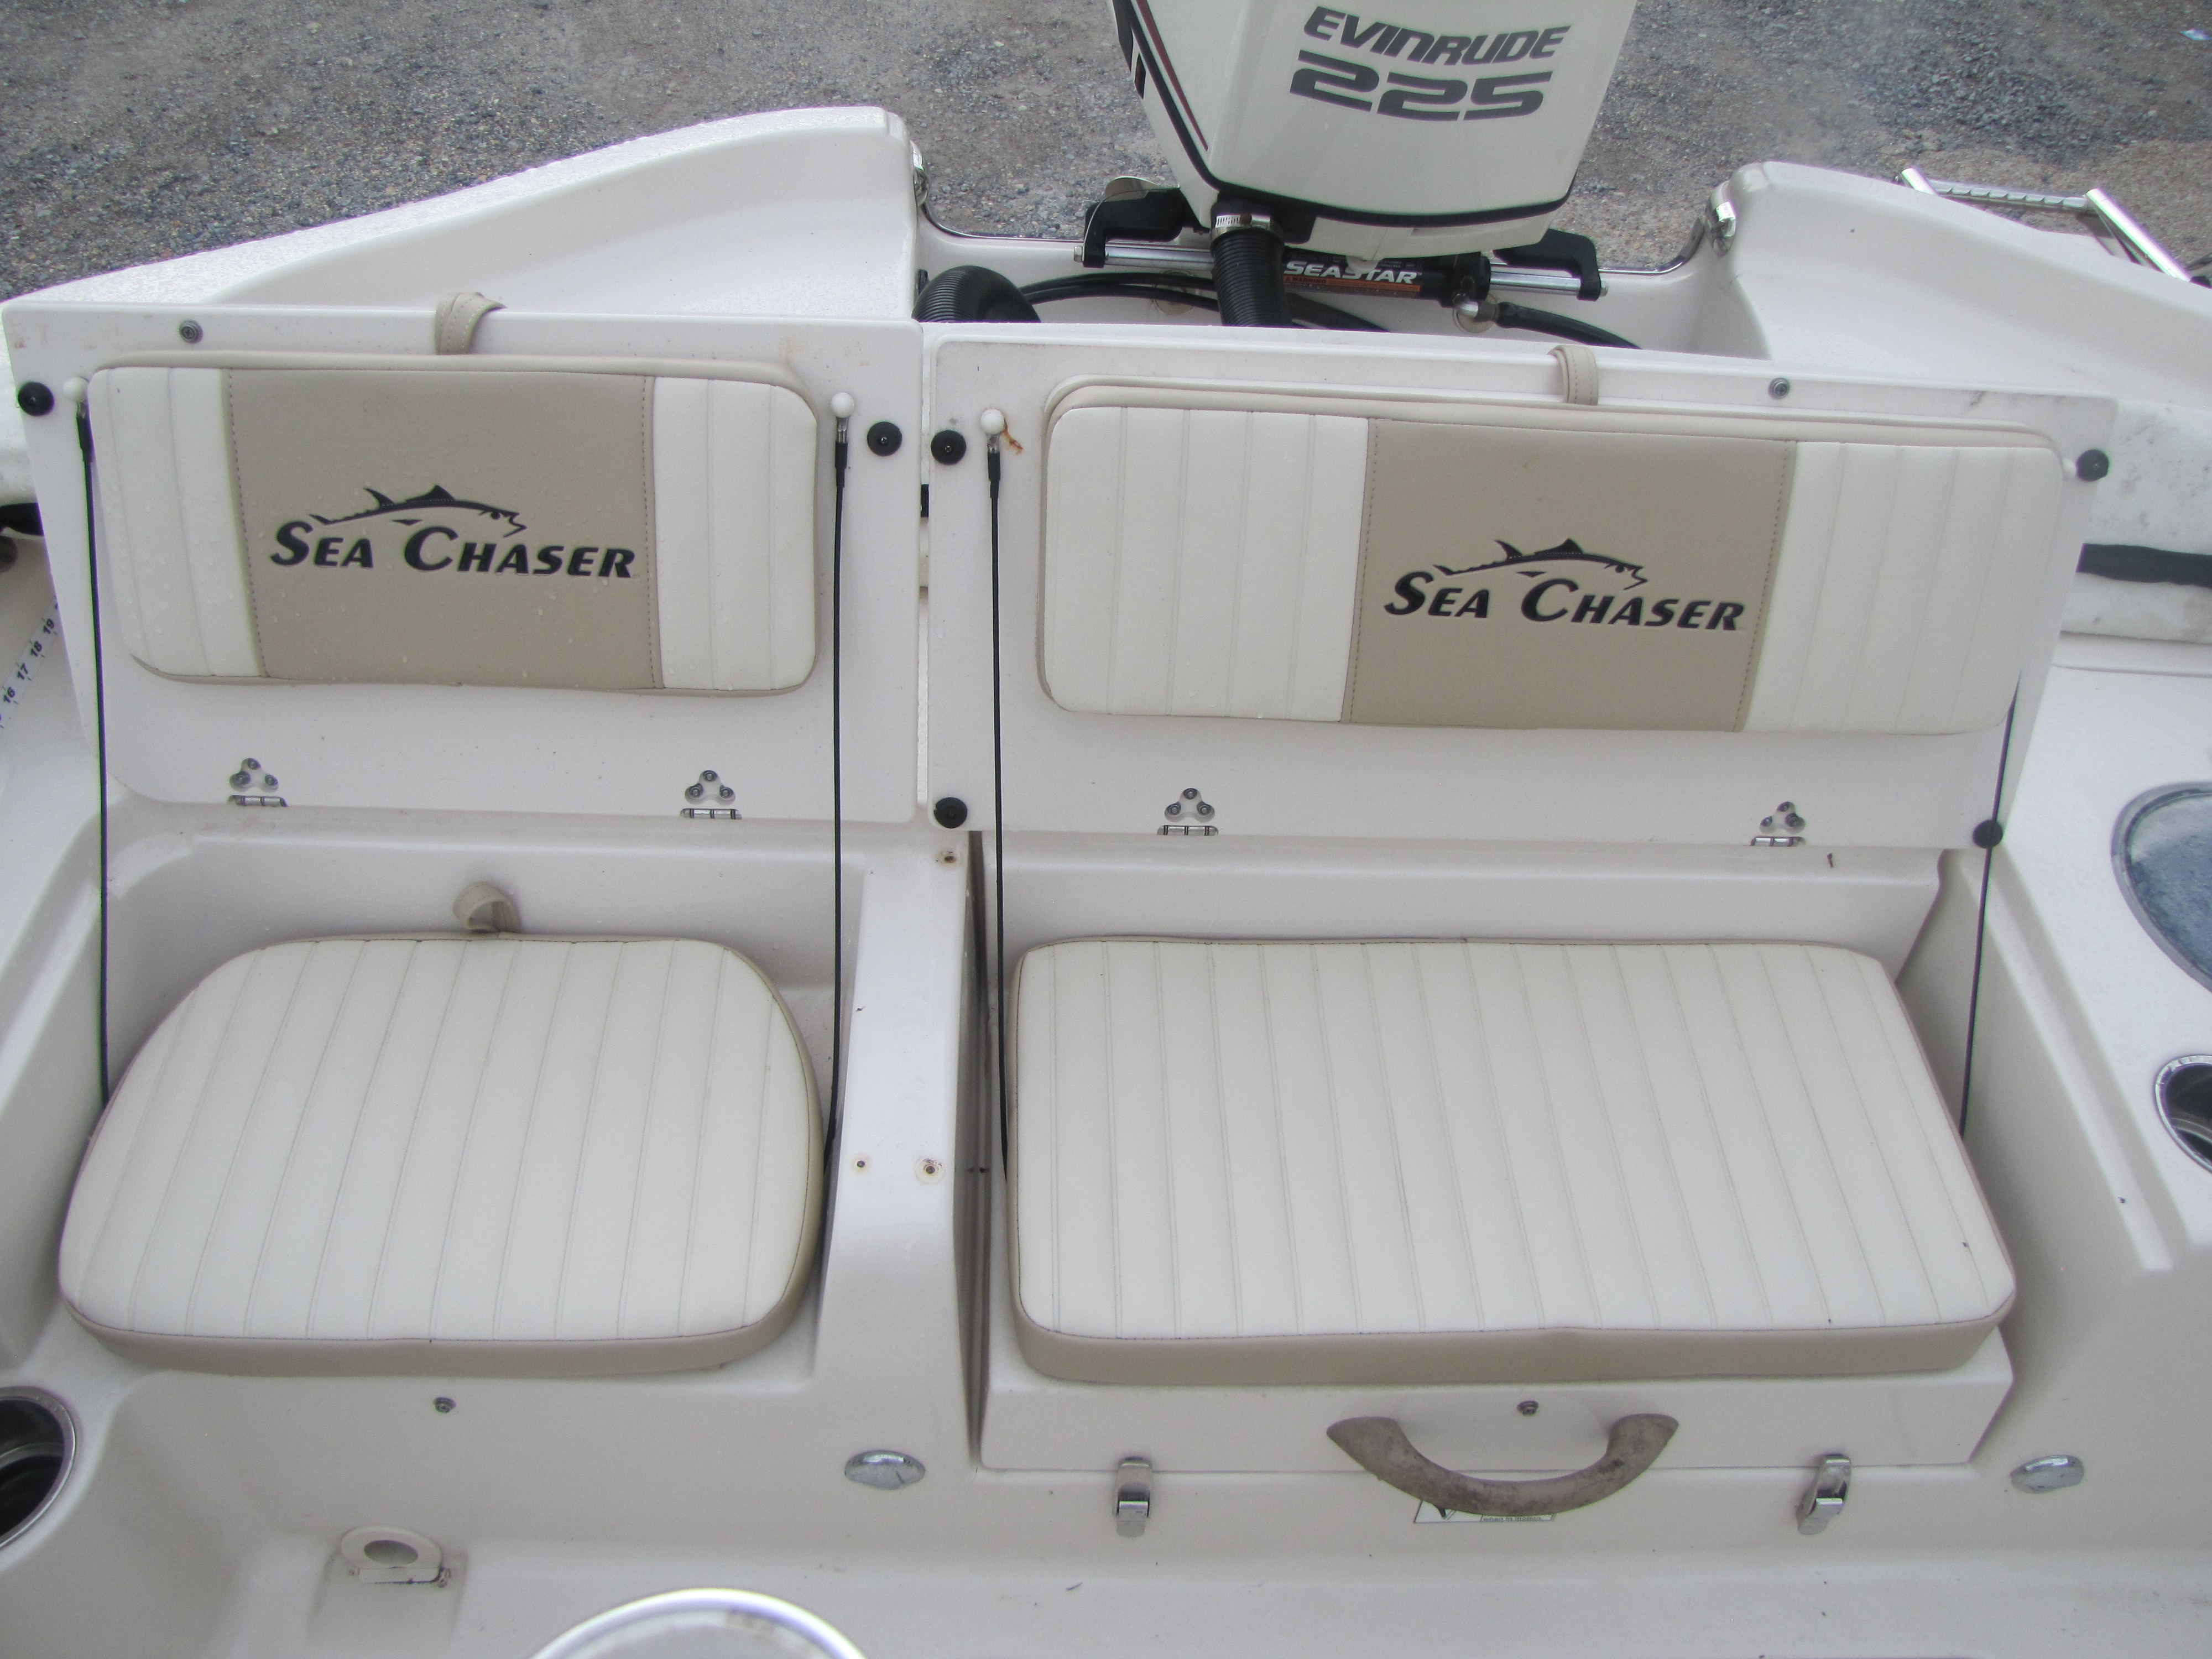 2018 Sea Chaser boat for sale, model of the boat is 23 LX & Image # 16 of 19